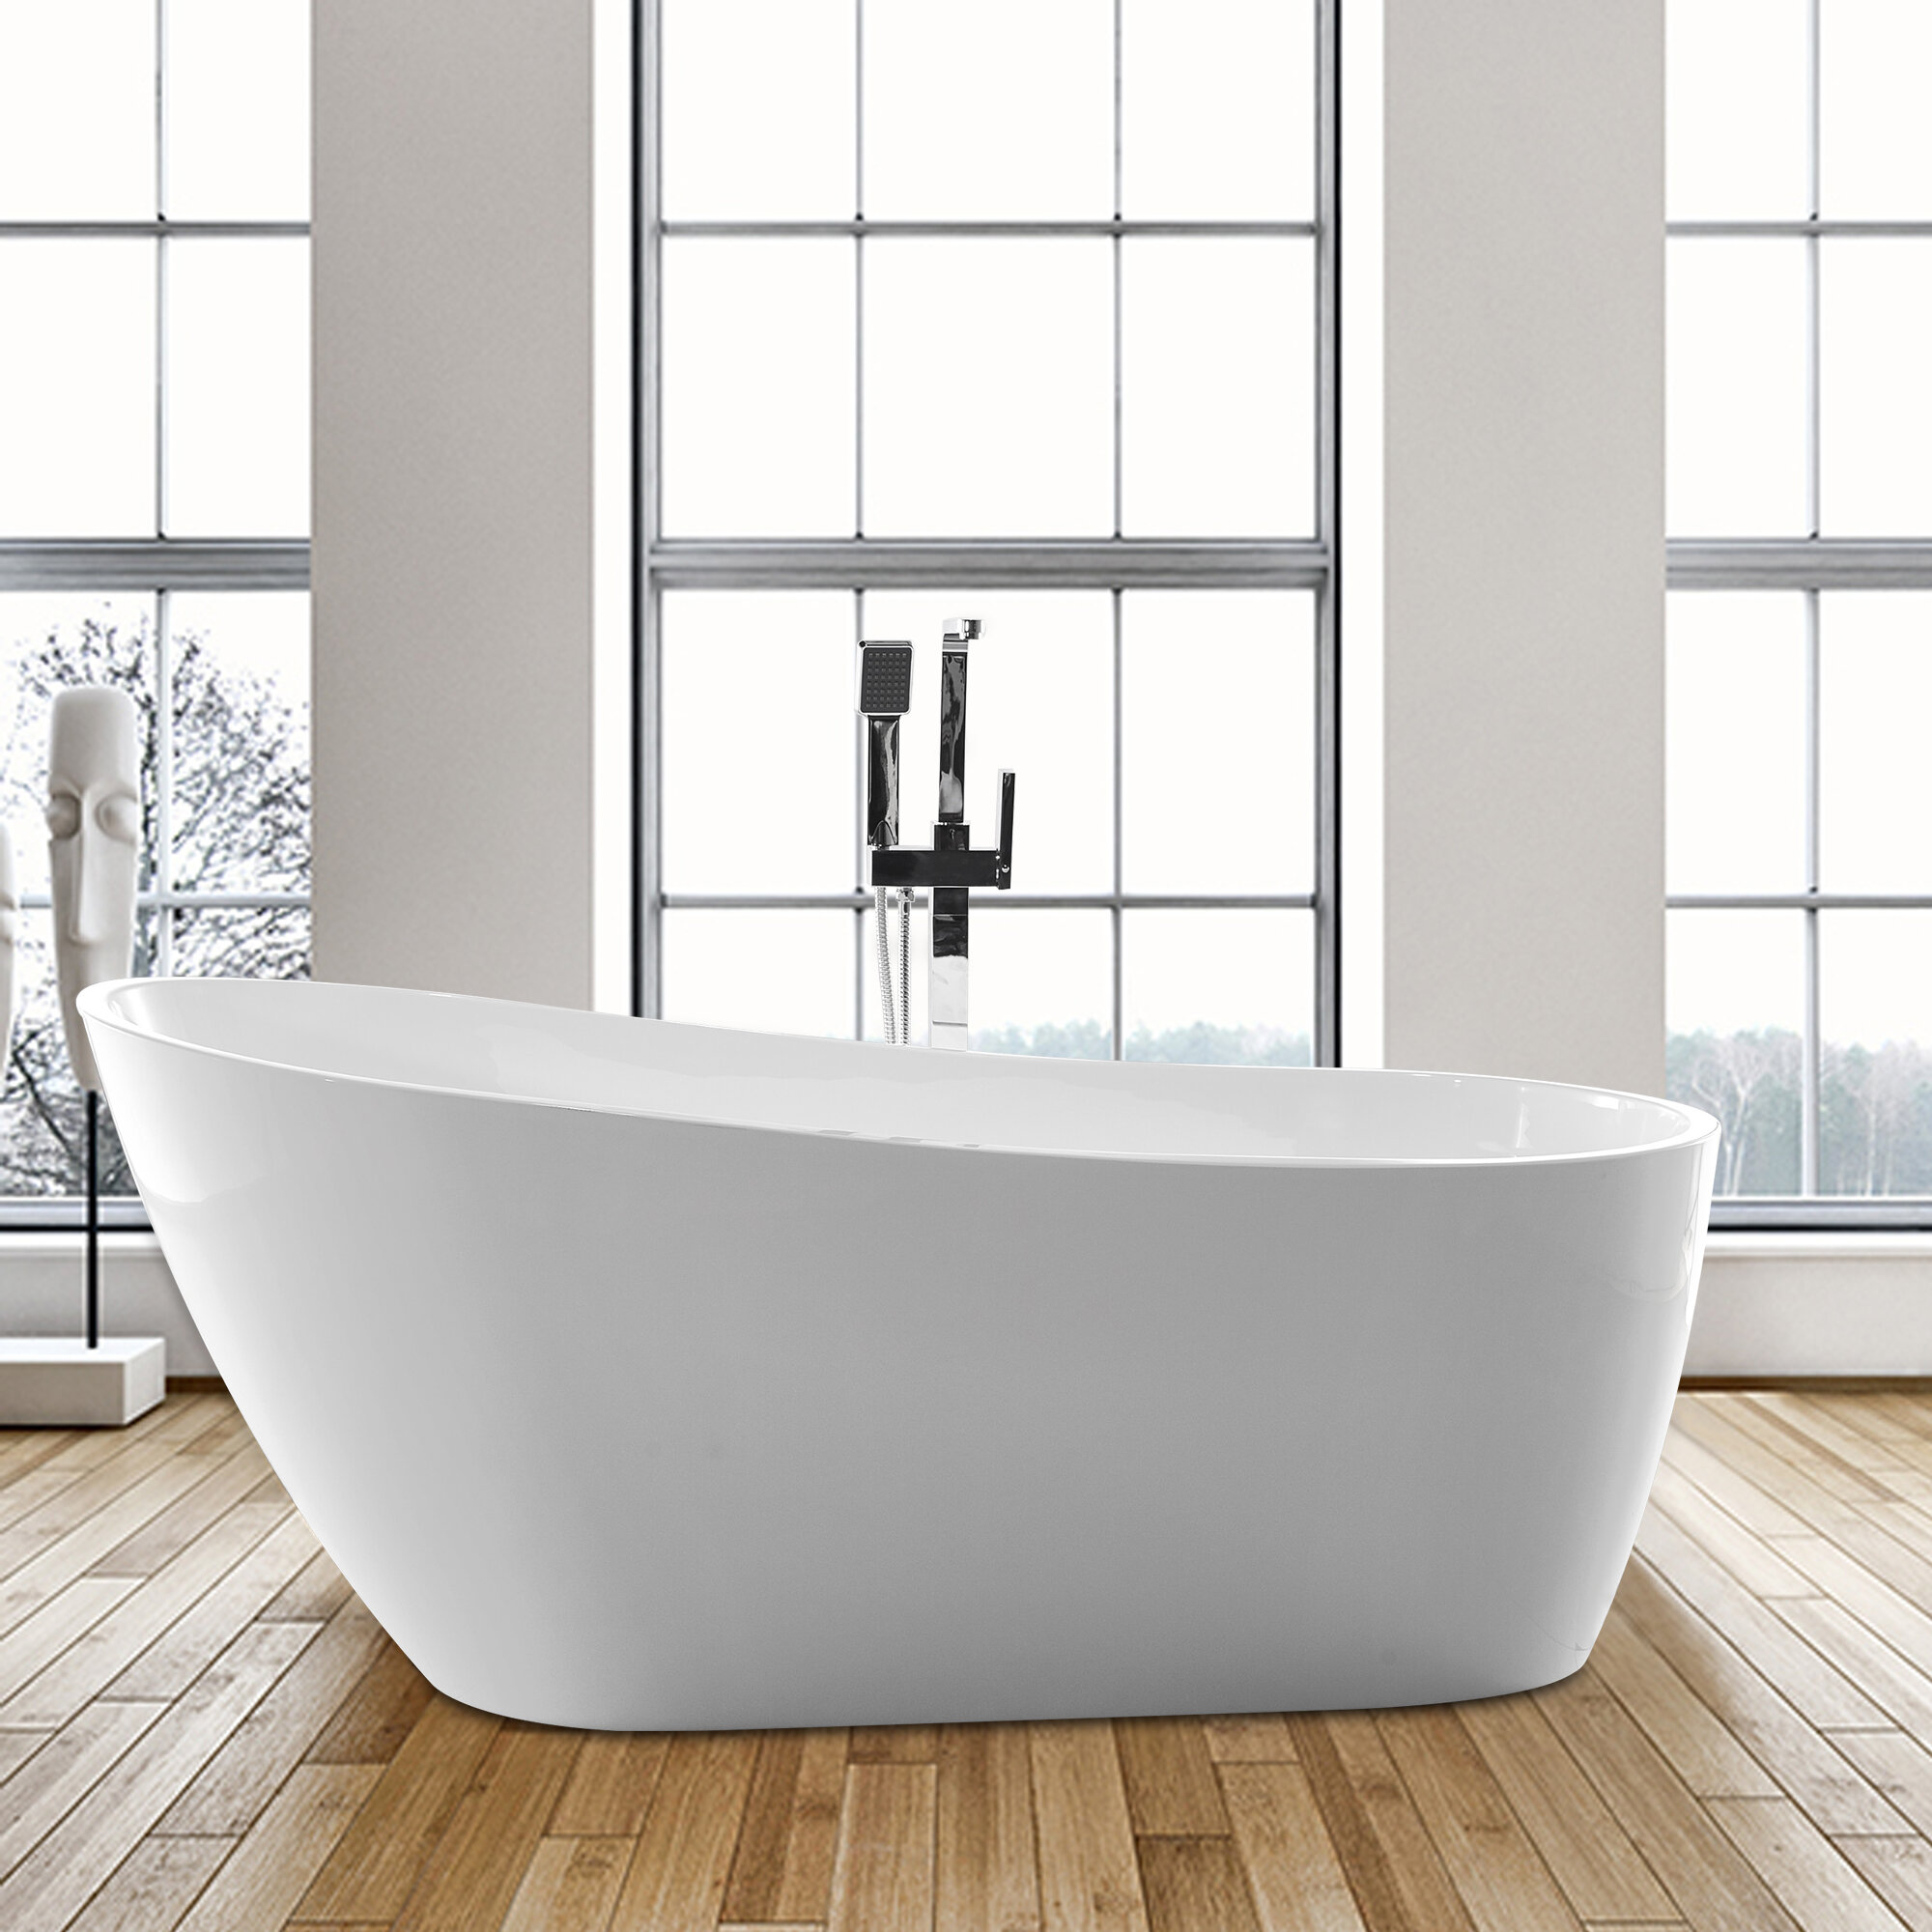 "8"" x 8"" Freestanding Soaking Bathtub"